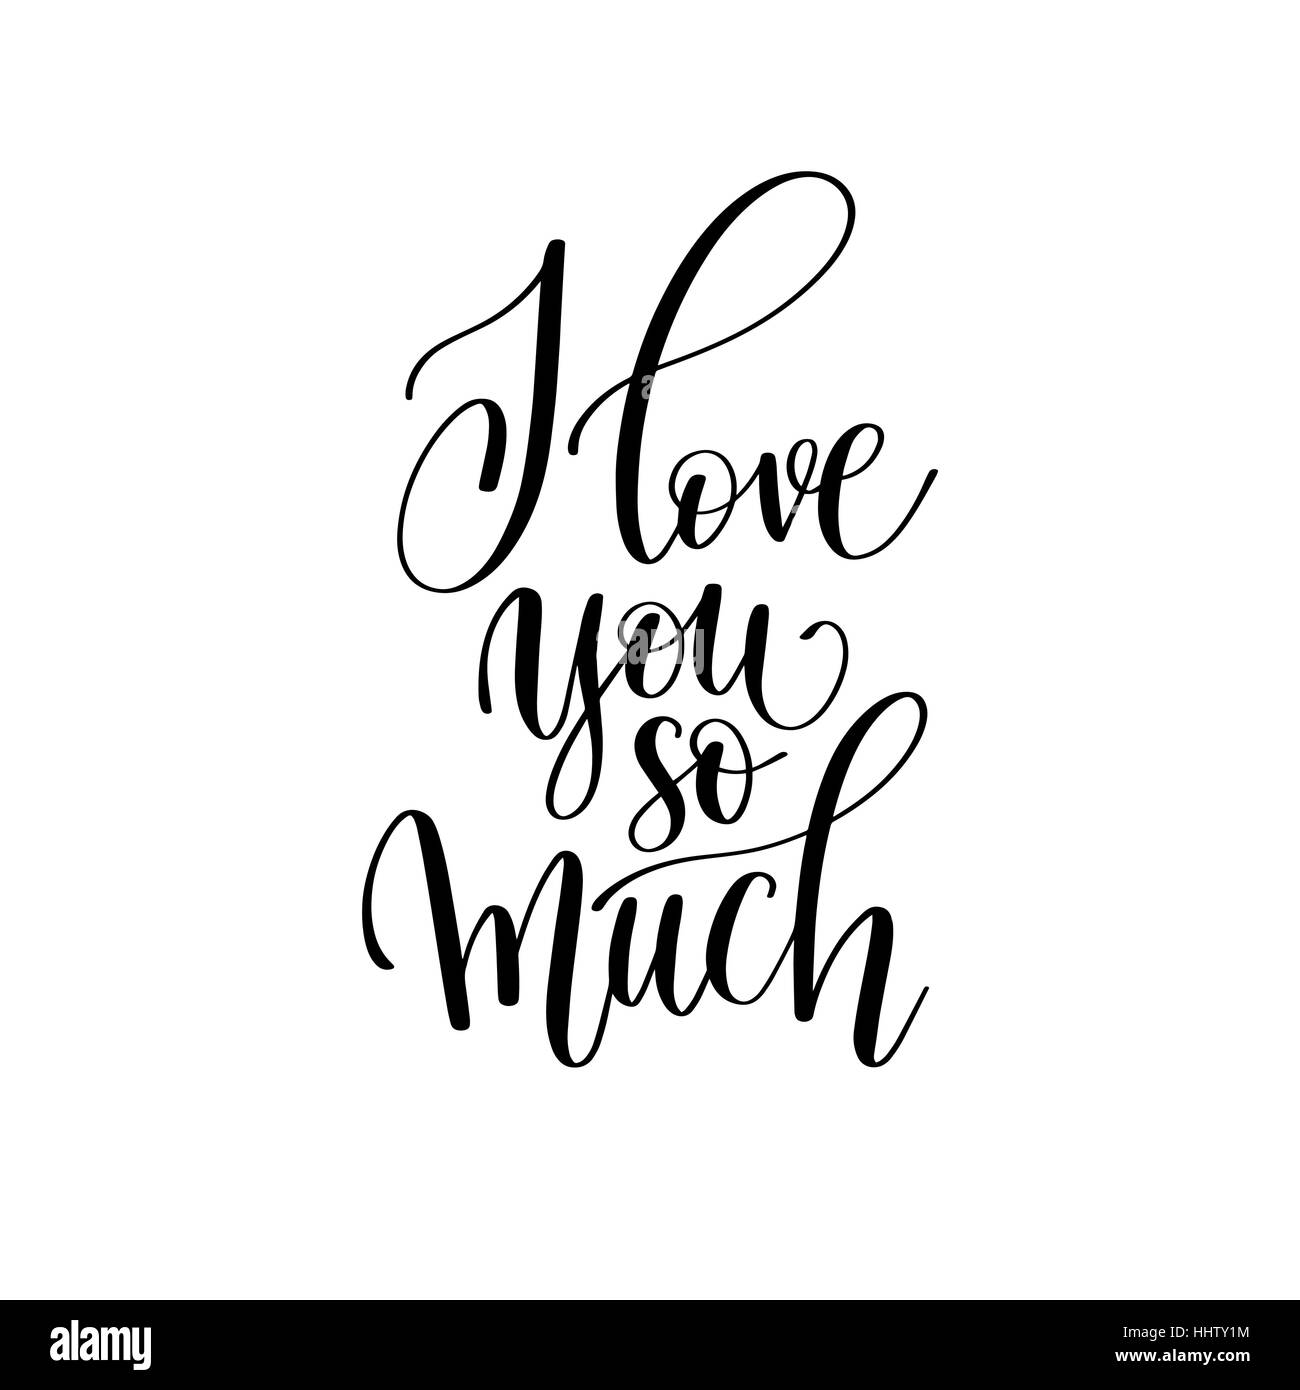 I love you so much black and white hand written lettering